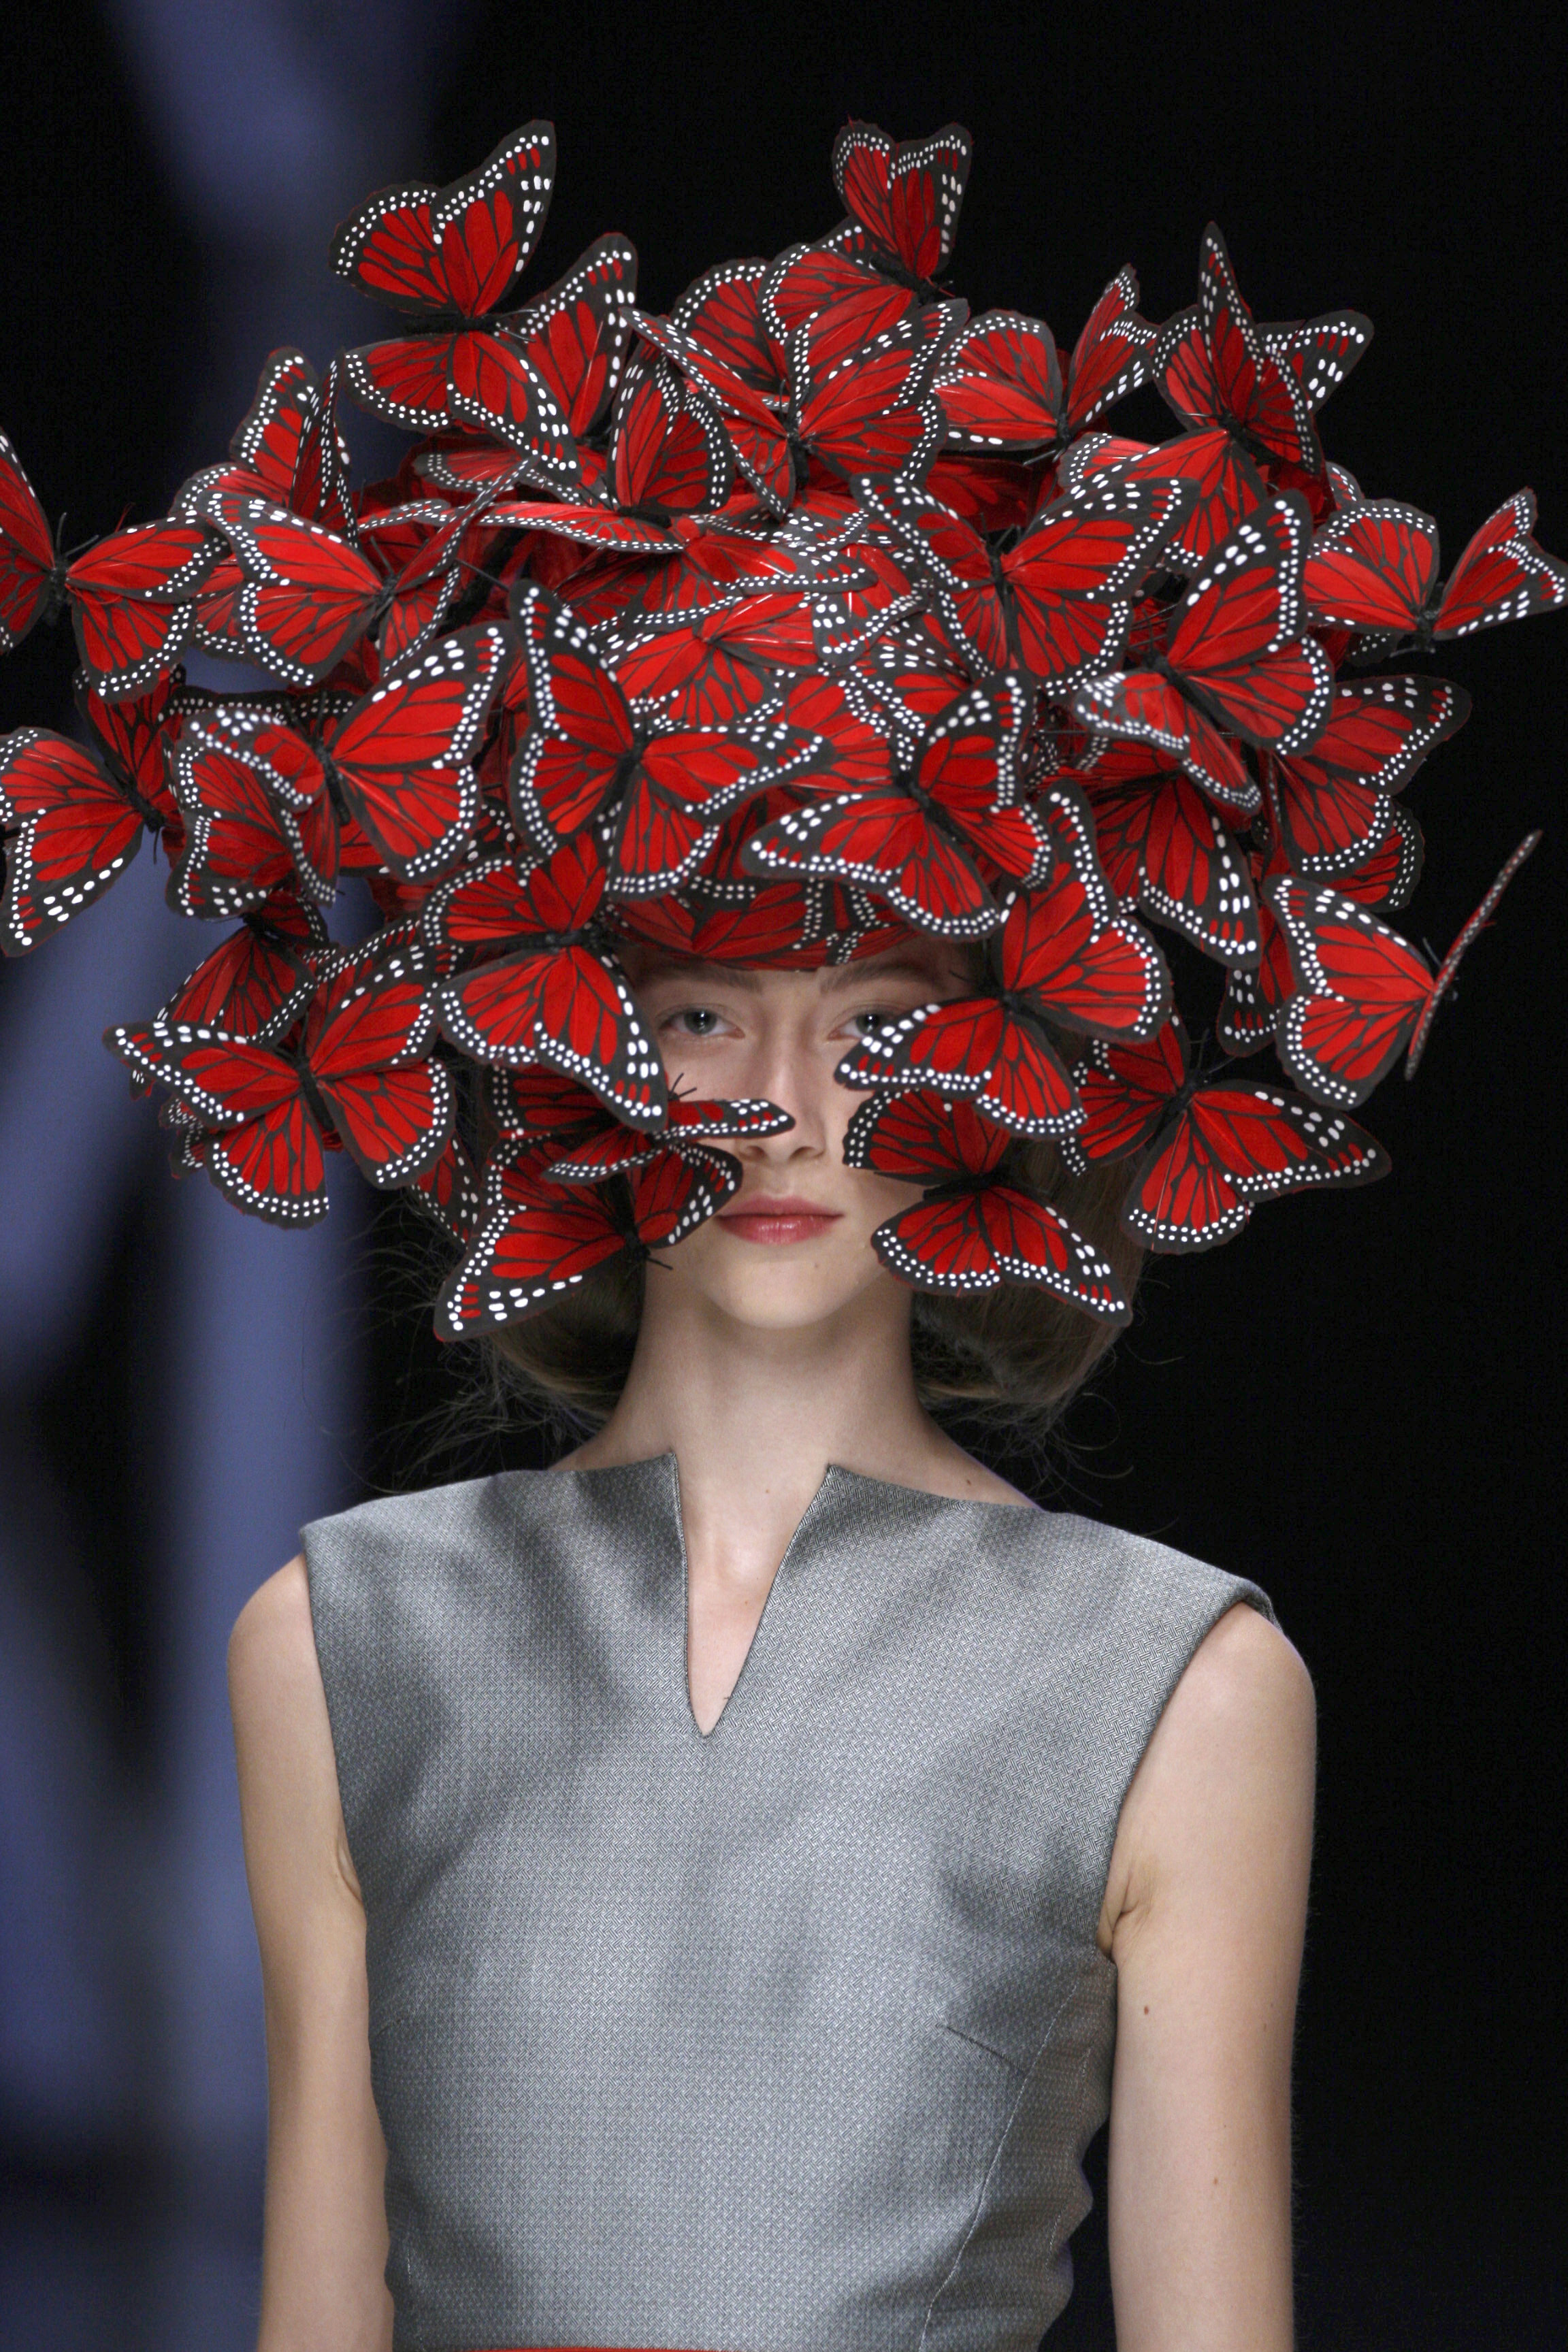 2._Butterfly_headdress_of_hand-painted_turkey_feathers_Philip_Treacy_for_Alexander_McQueen_La_Dame_Bleu_Spring_Summer_2008_copyright_Anthea_Sims_1